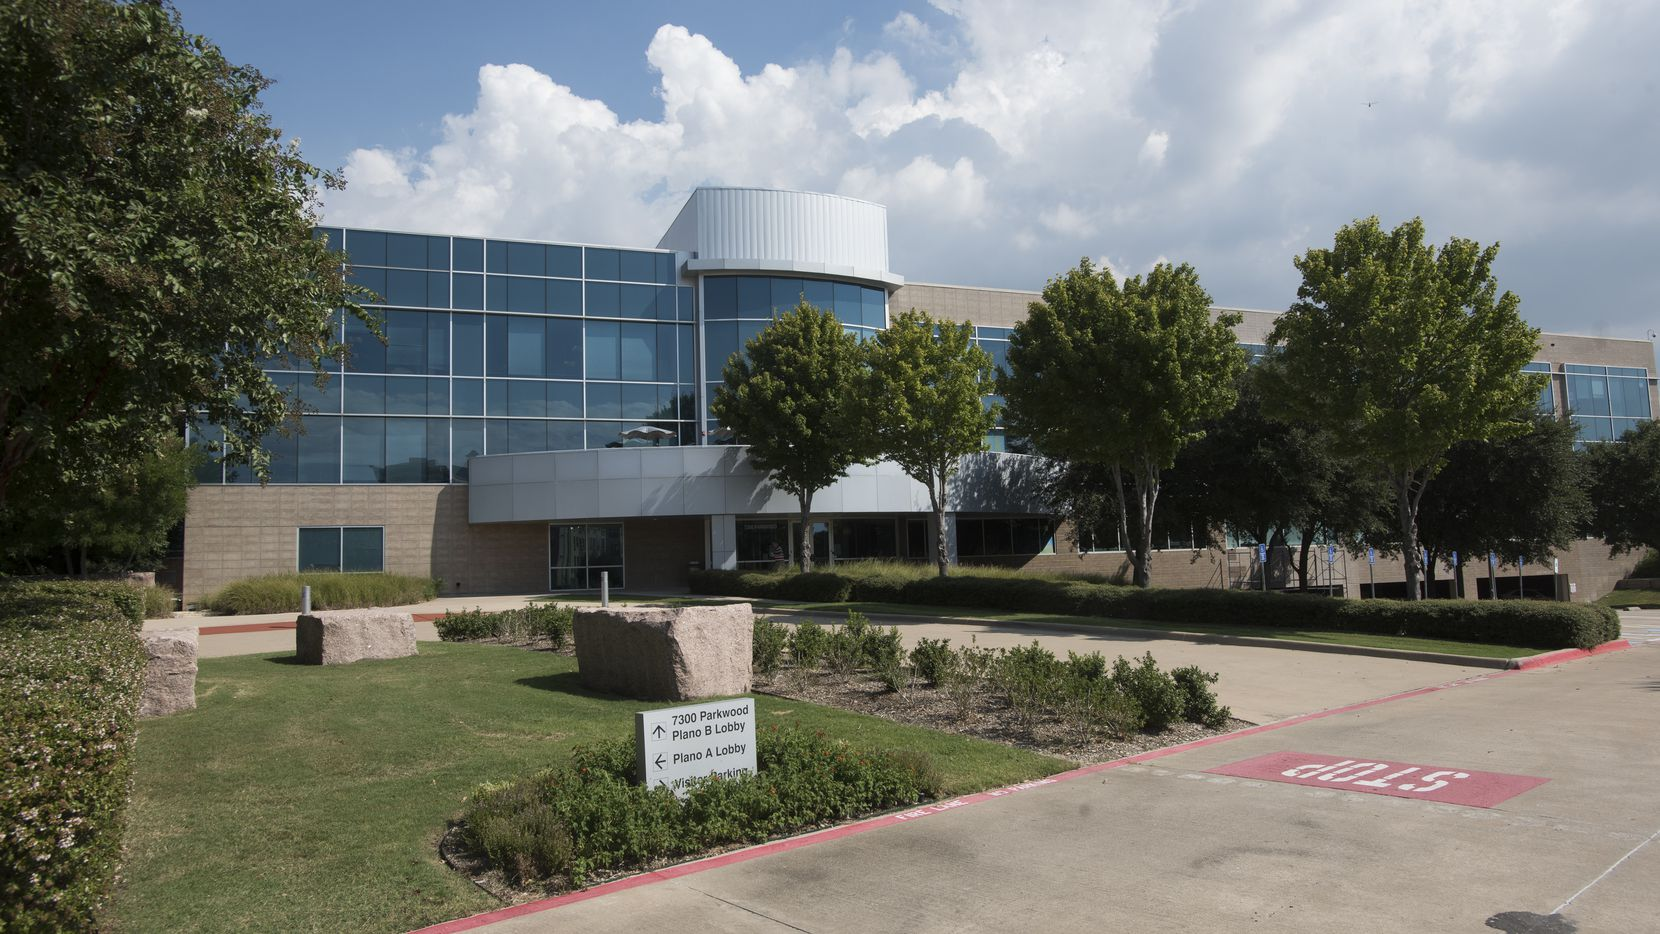 Insurer Usaa Will Build Plano Office To House Hundreds Of Workers